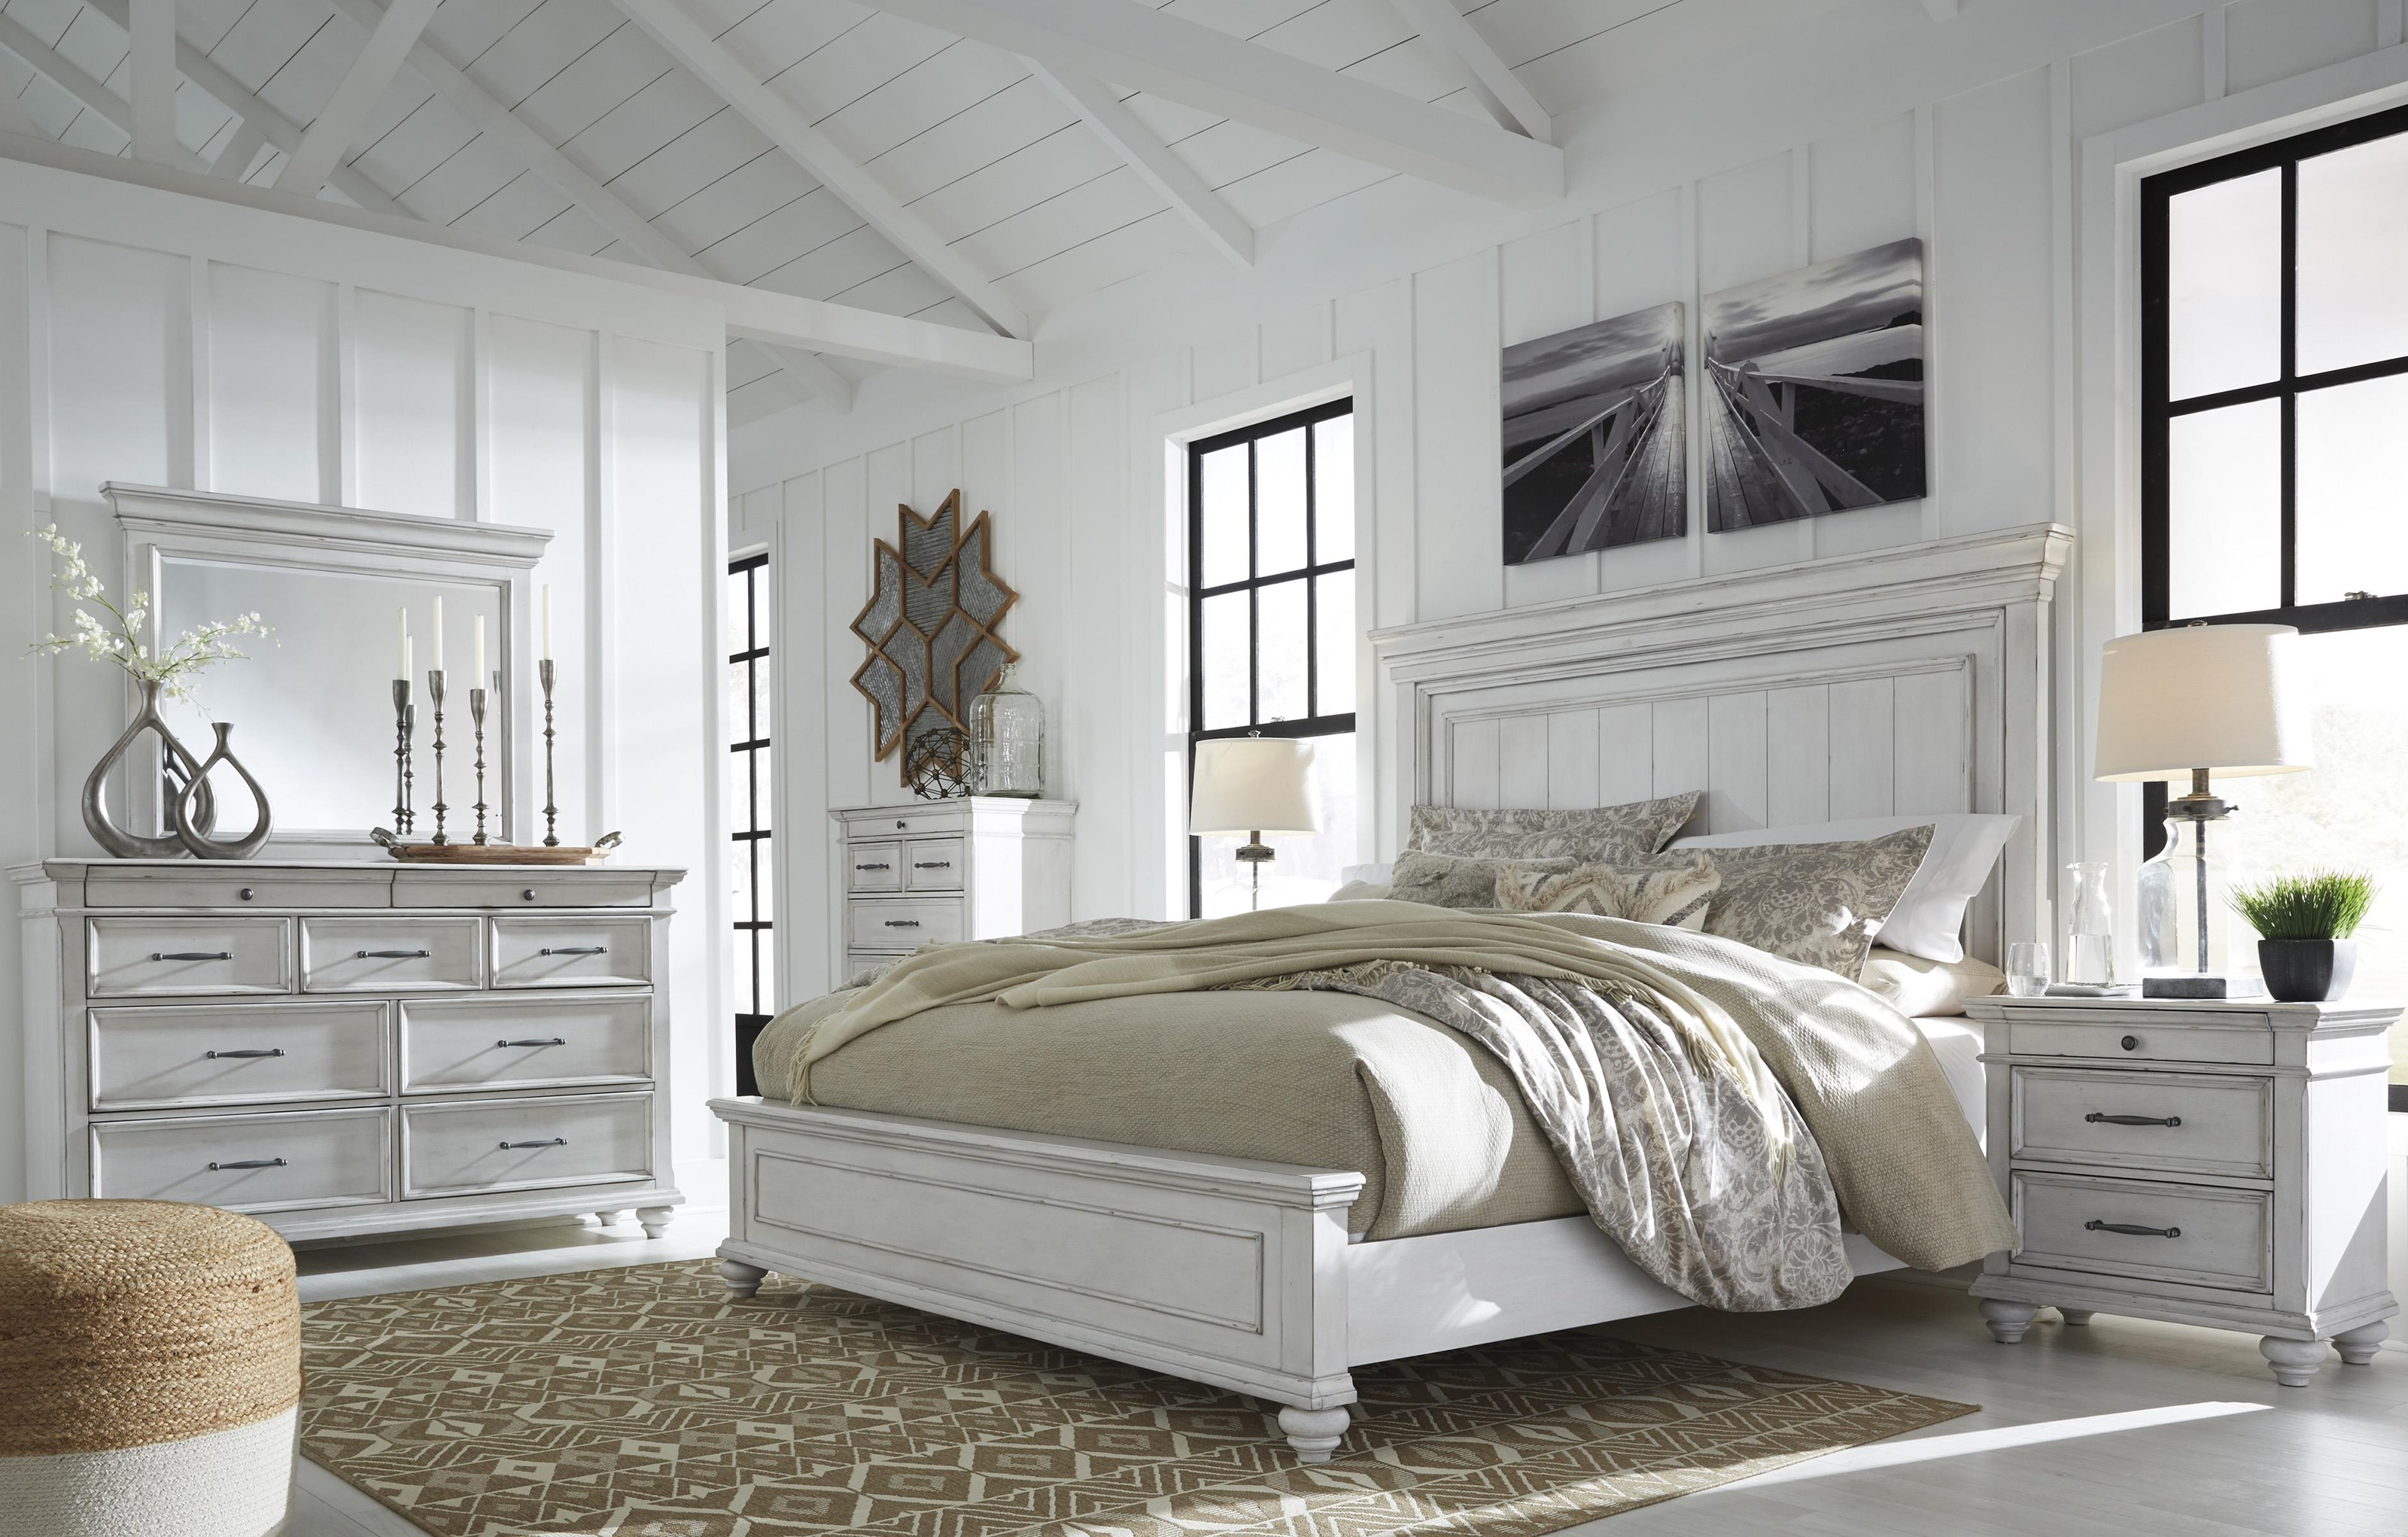 Kanwyn 5 Piece Queen Panel Queen Bedroom Set by Benchcraft at Sam Levitz Outlet